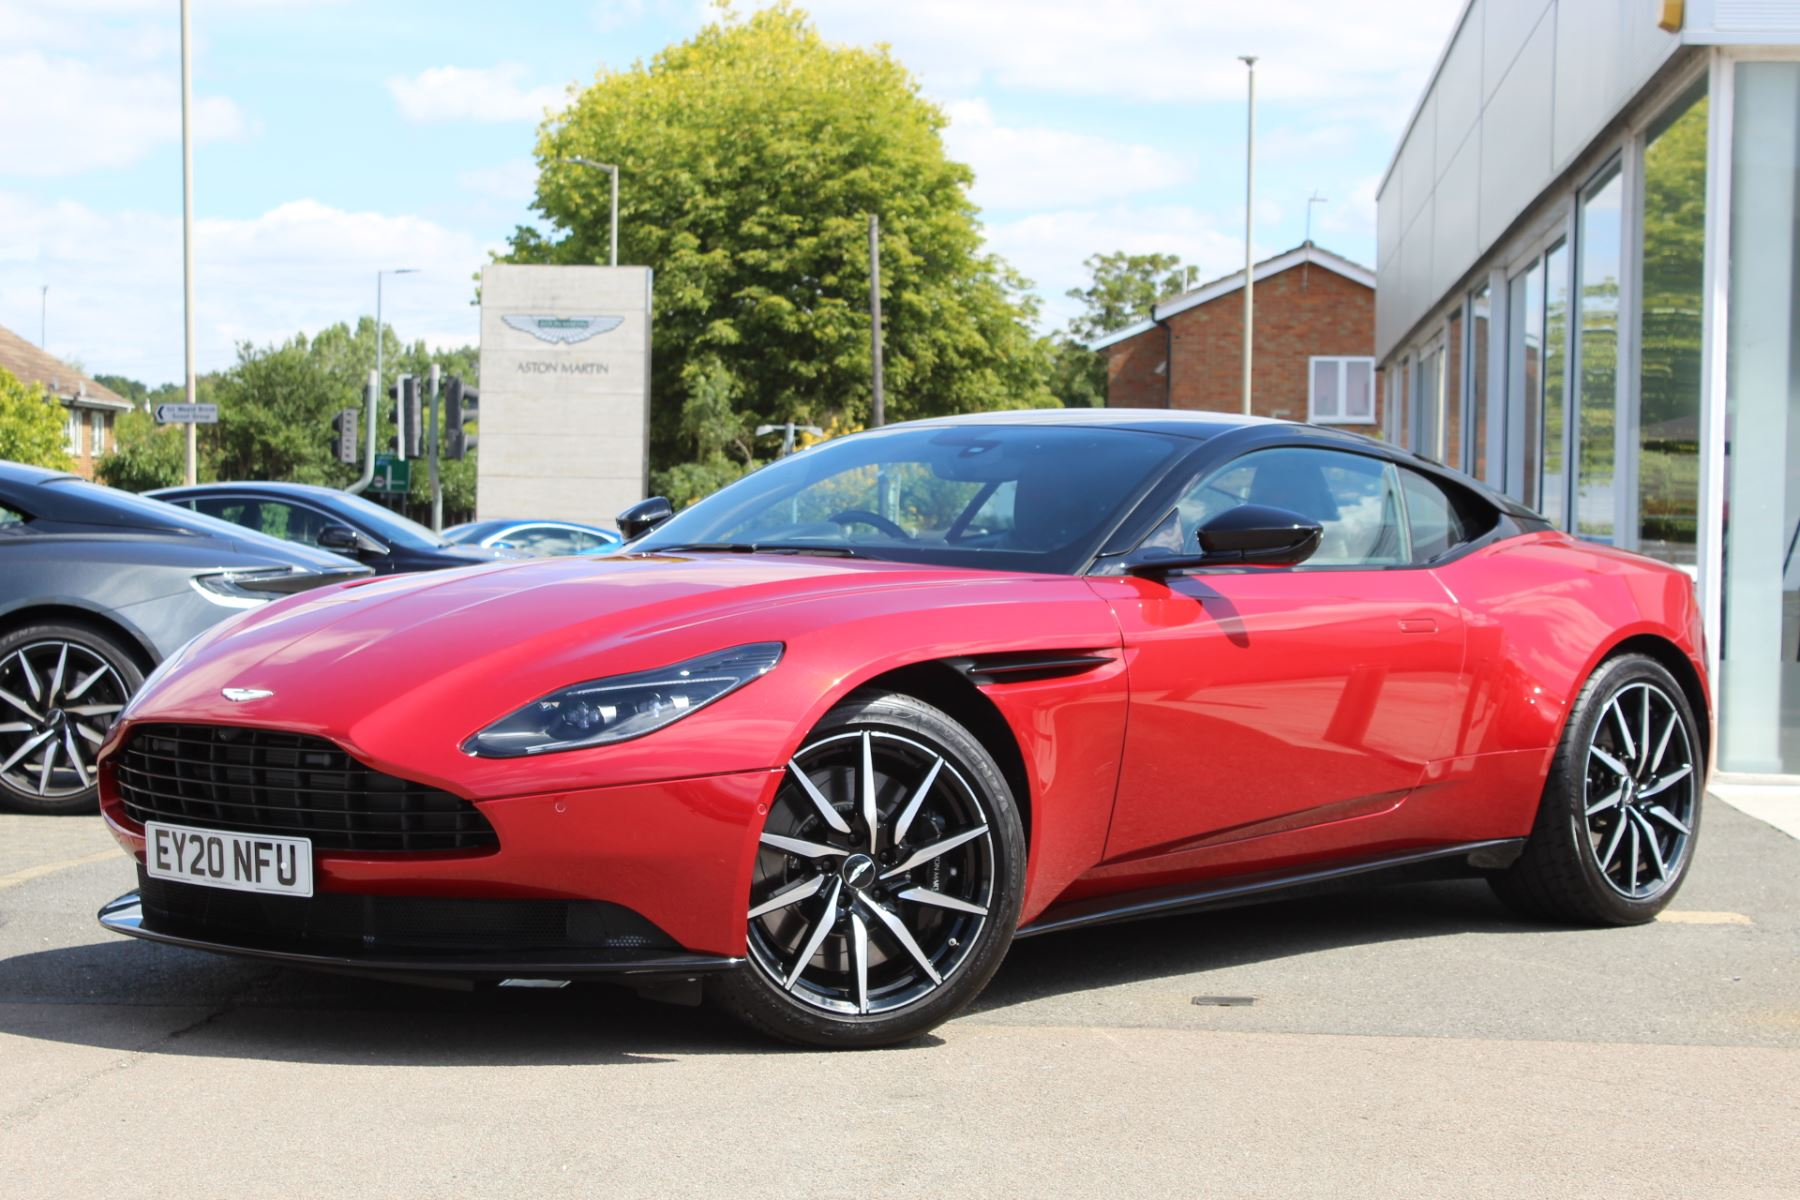 Aston Martin DB11 V8 2dr Touchtronic image 4